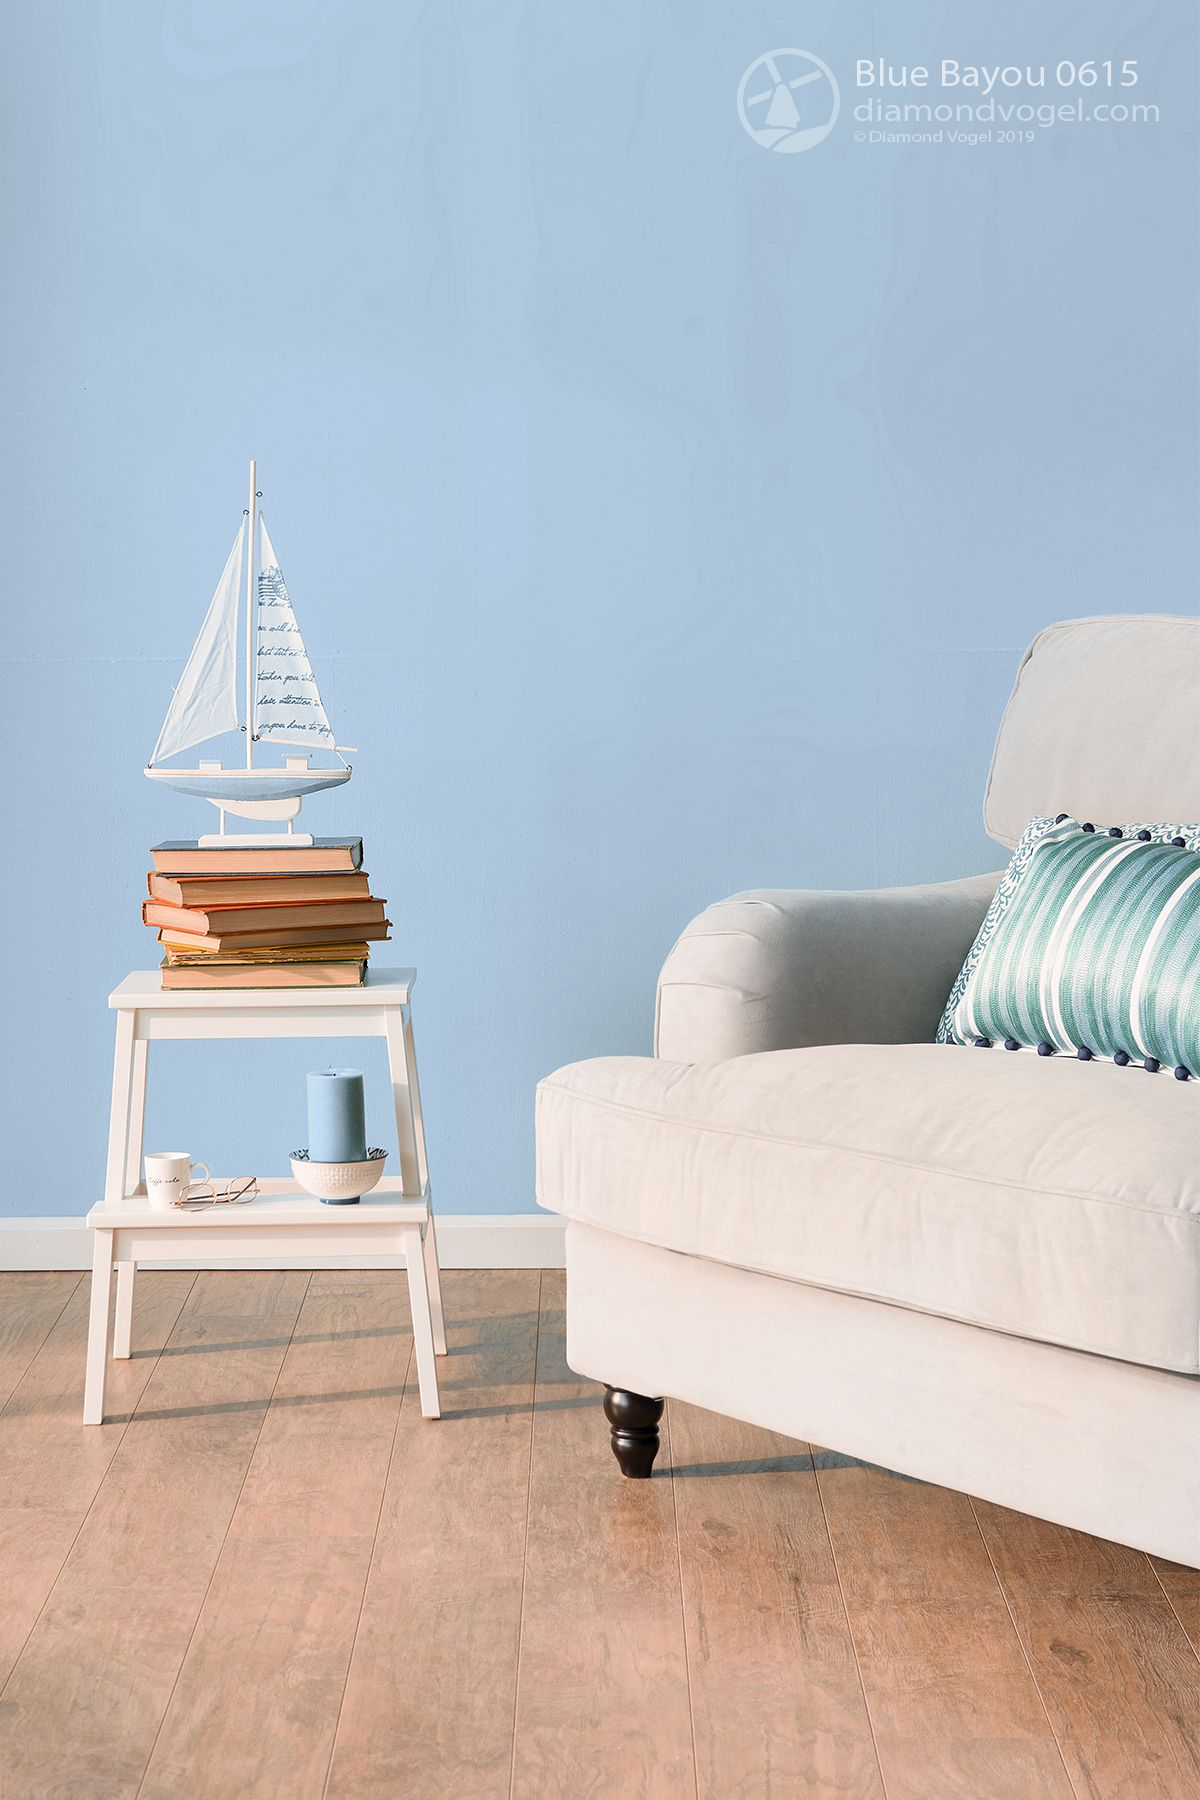 Nautical Blues: This mid tone blue creates a tranquil mood ...